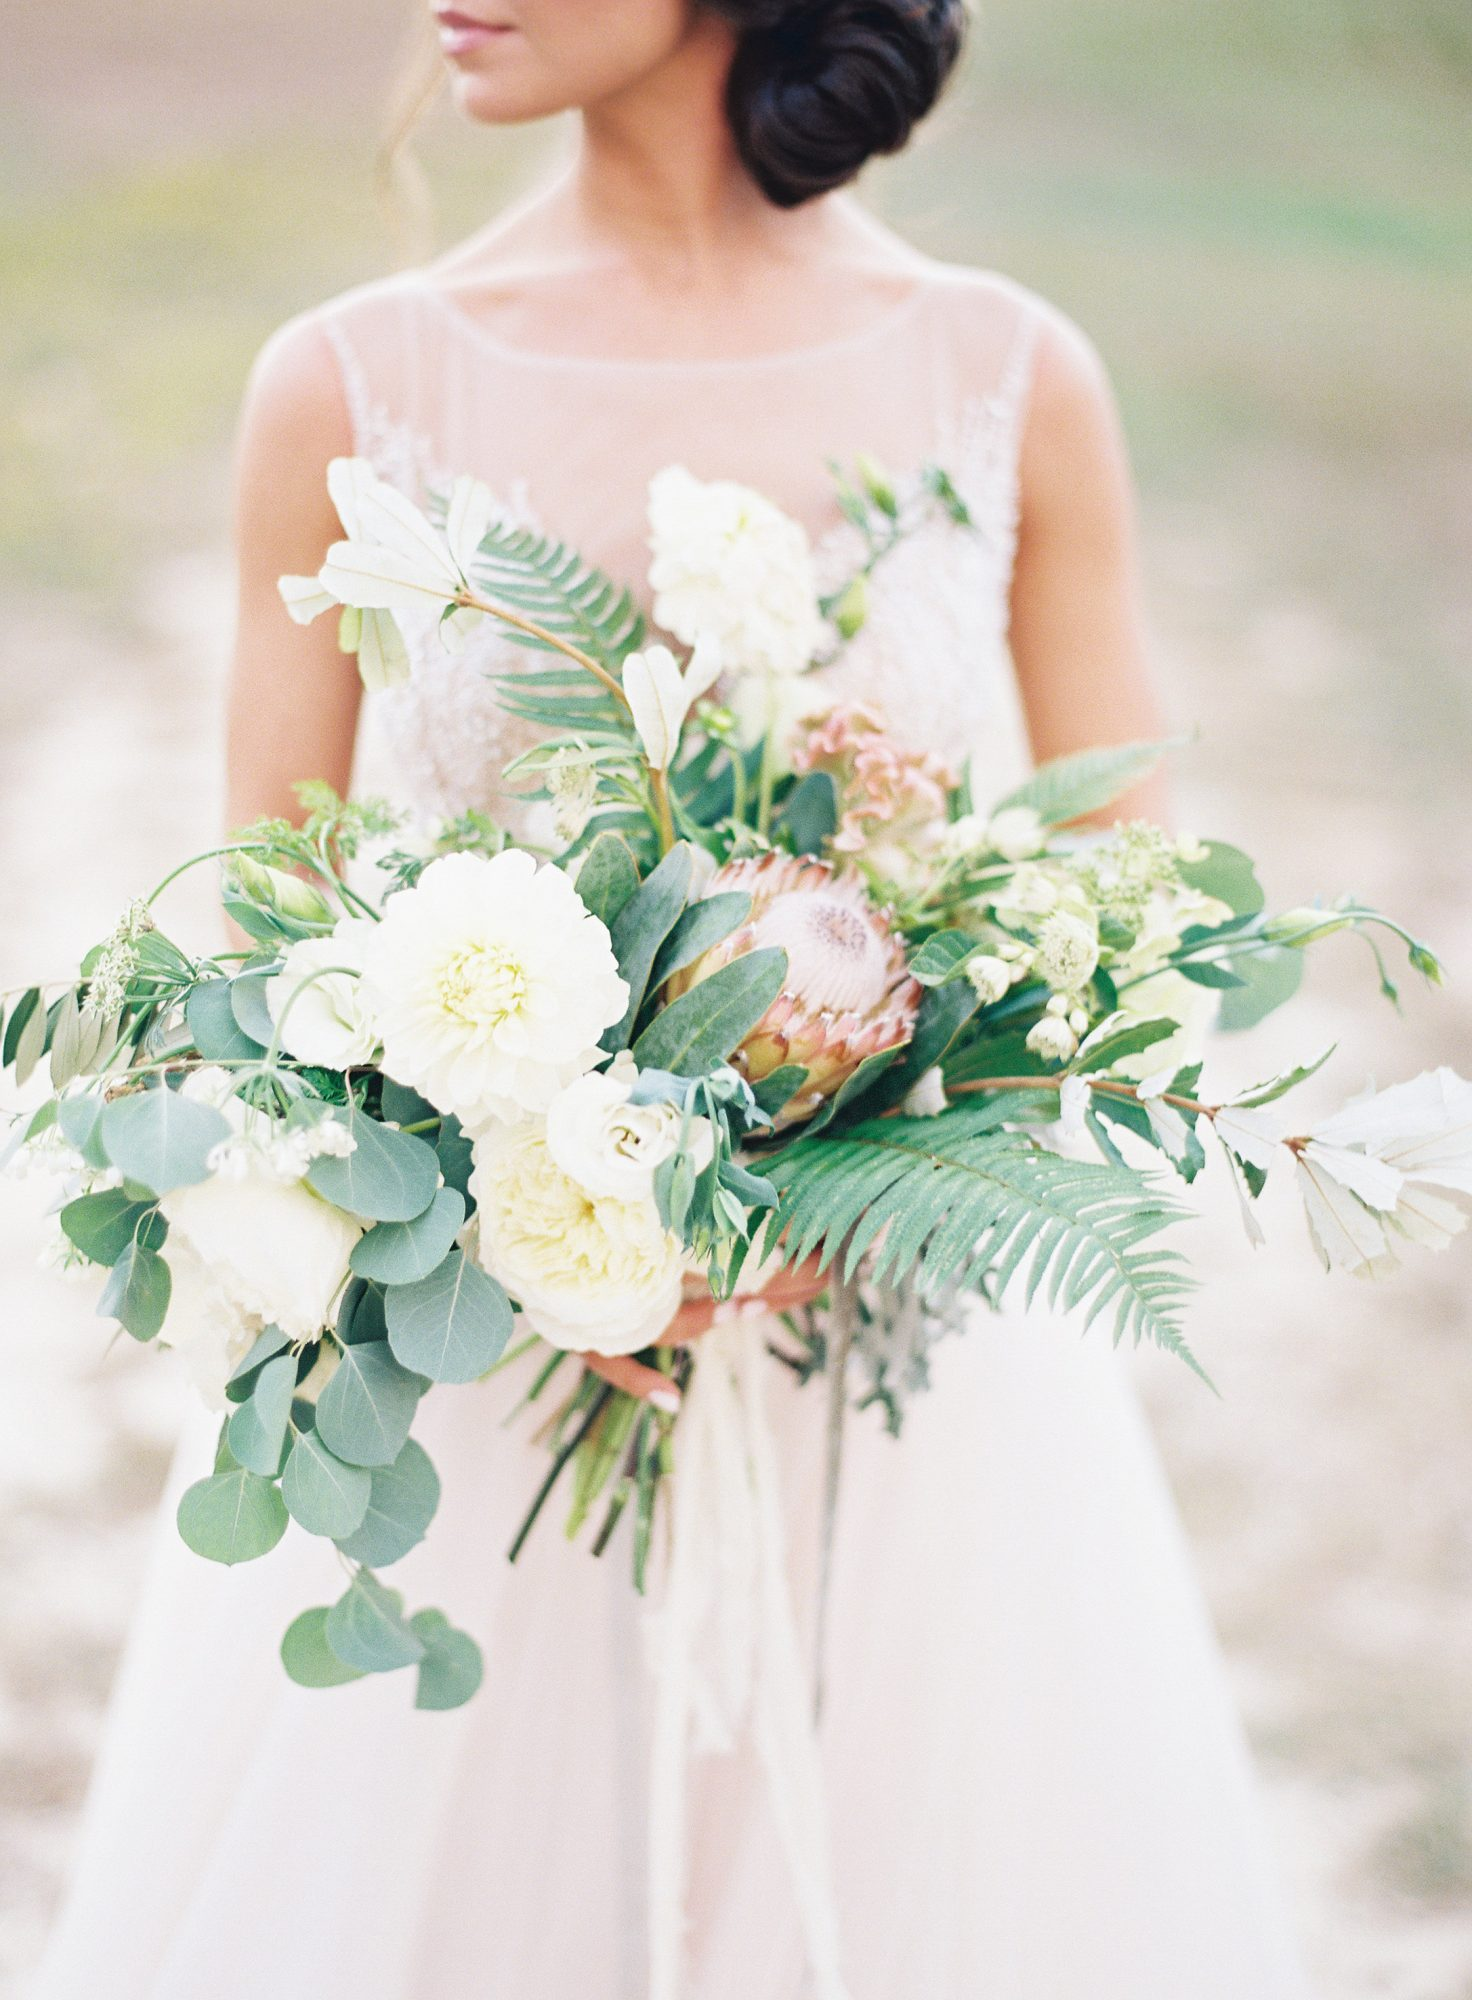 Bride Holding Ivory Wedding Bouquet